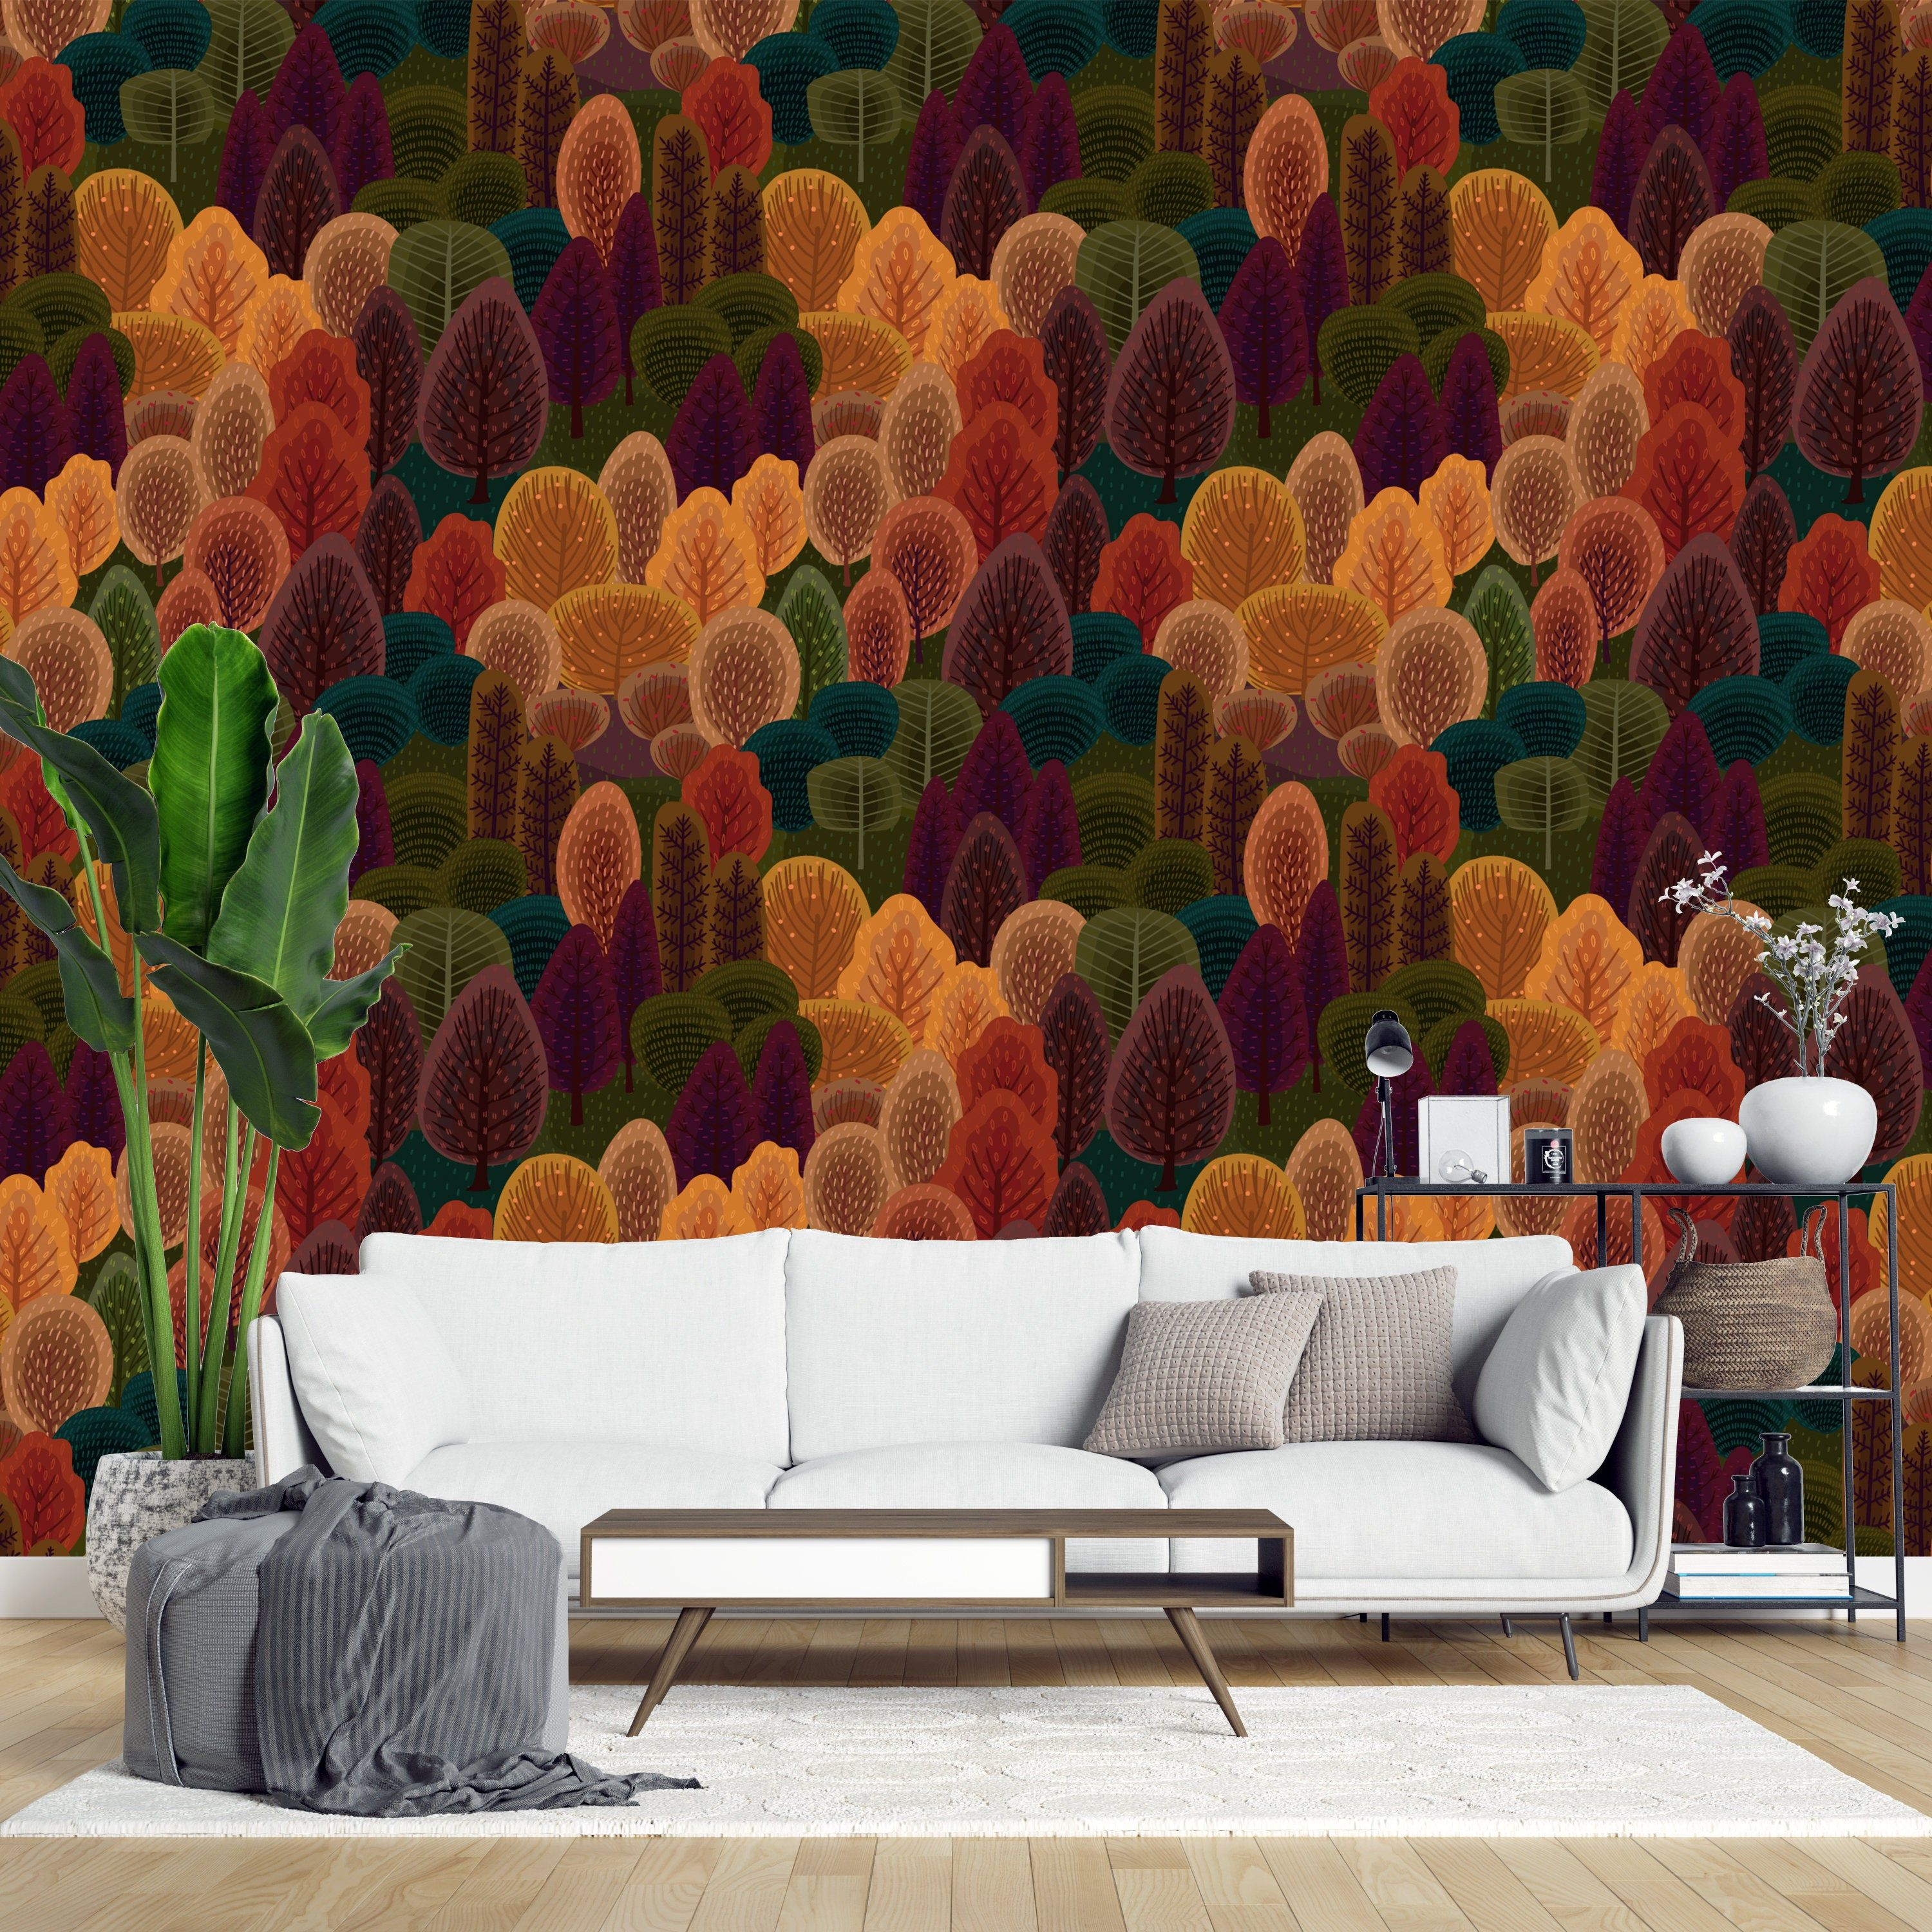 Autumn Peel And Stick Removable Wallpaper